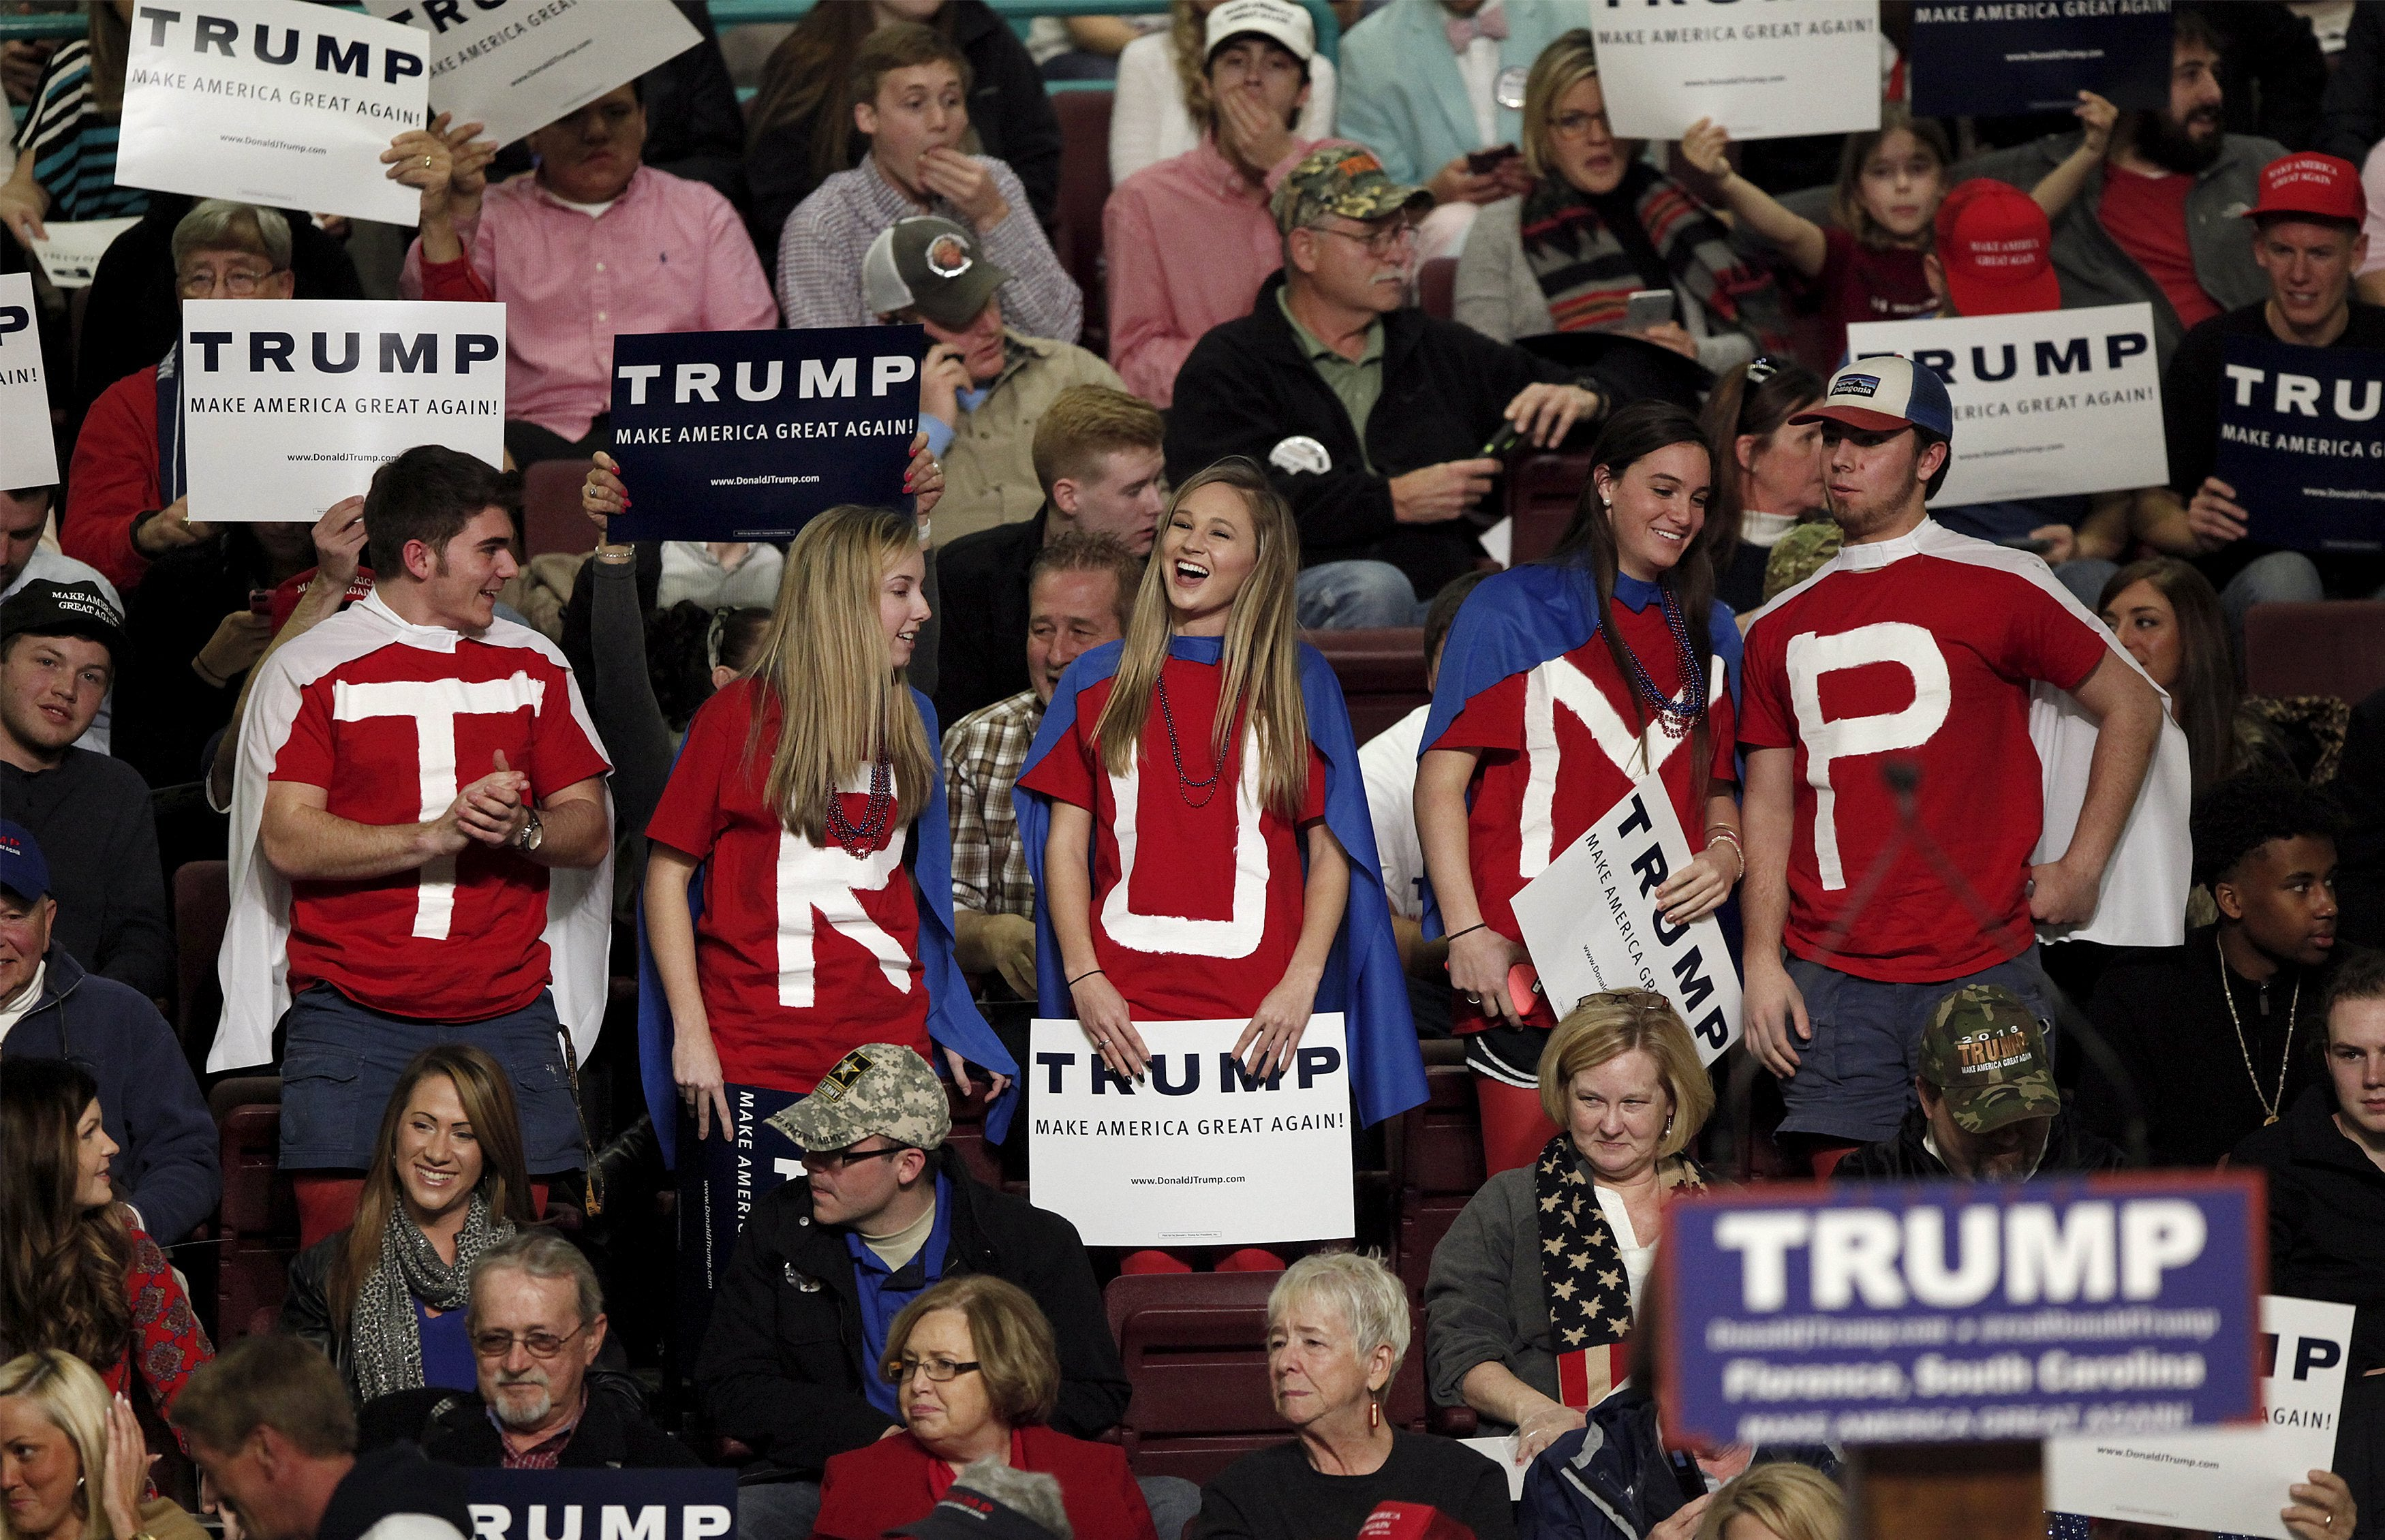 Students from Hartsville High School in Hartsville, South Carolina dressed as caped crusaders for Republican presidential candidate Donald TrumpTrump, cheer for Trump at the Florence Civic Center in Florence, South Carolina, February 5, 2016. REUTERS/Randall Hill